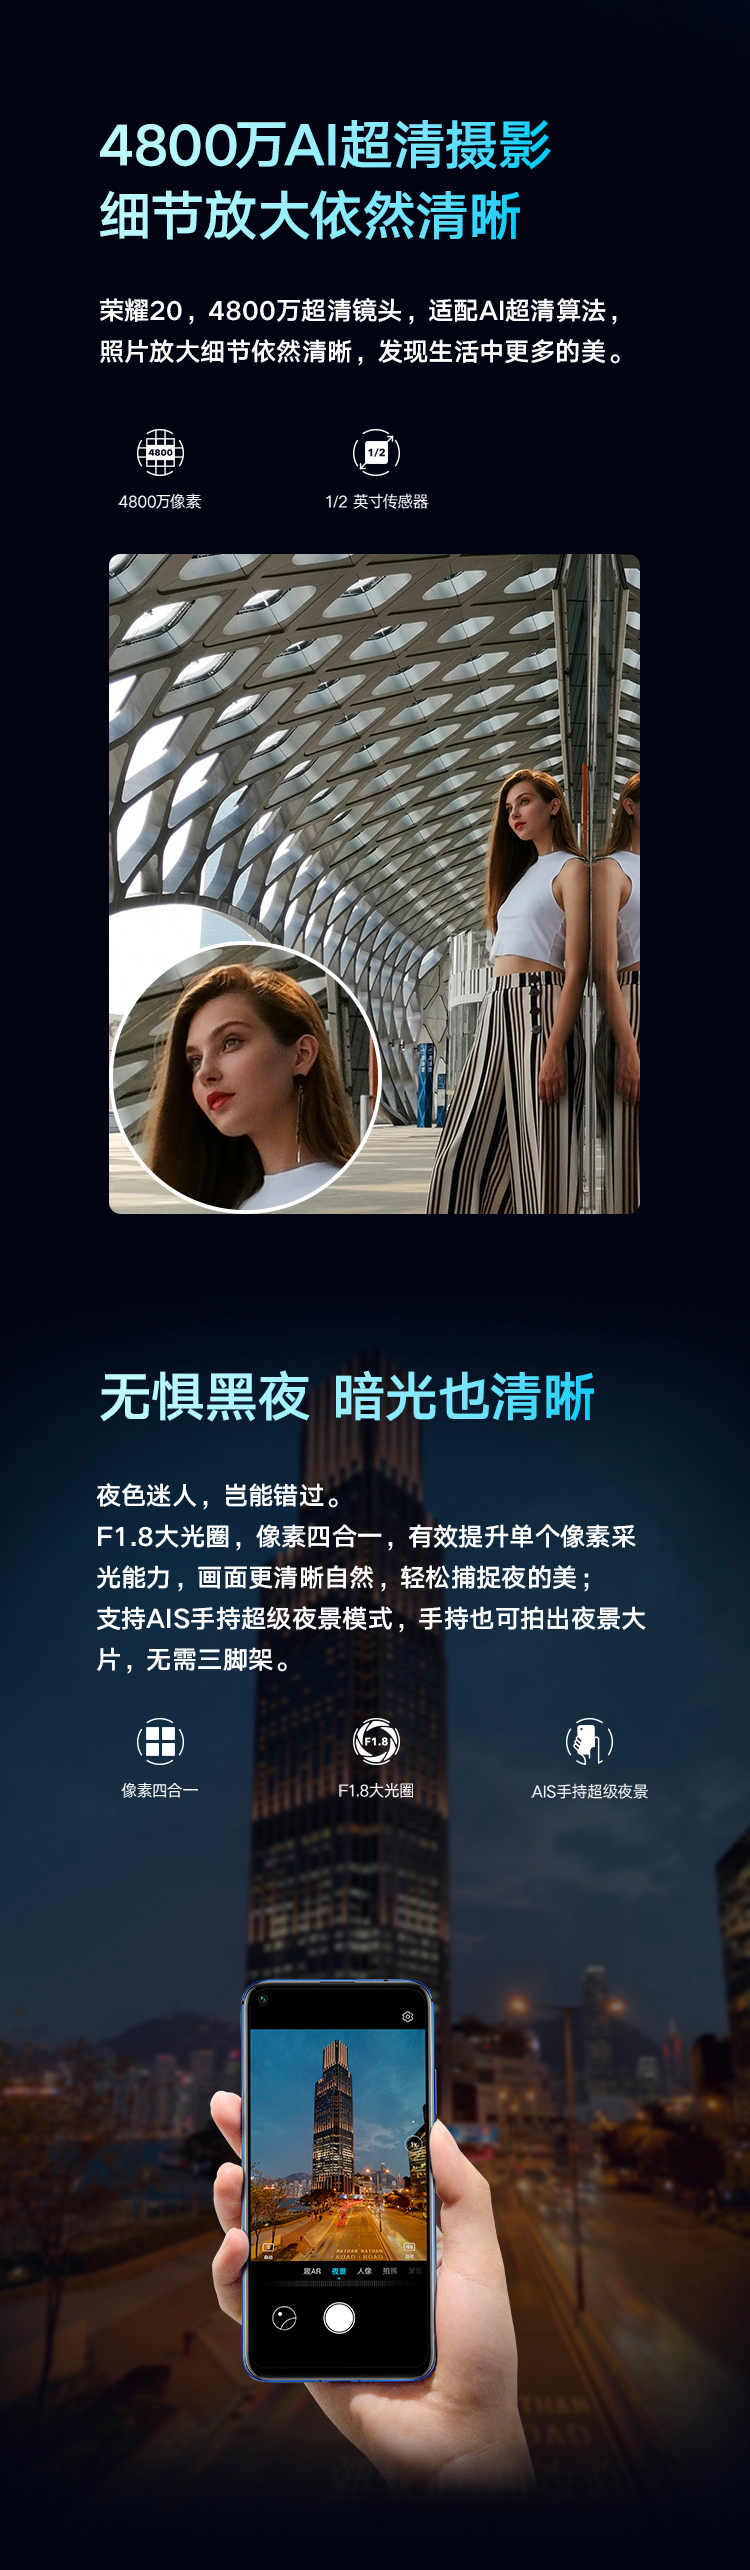 """src=https://uimgproxy.suning.cn/uimg1/sop/commodity/JIEQUXZiB9Vx6CyvYz-PhQ.jpg class=err-product style=border: 0px; word-break: break-all; vertical-align: middle; background: url(""""images/blankbg.gif?v=2015102601"""") 50% 50% no-repeat rgb(255, 255, 255); max-width: 750px; color: rgb(102, 102, 102); font-family: Arial, """"Microsoft YaHei"""", SimSun; font-size: 12px; white-space: normal;/><img alt="""